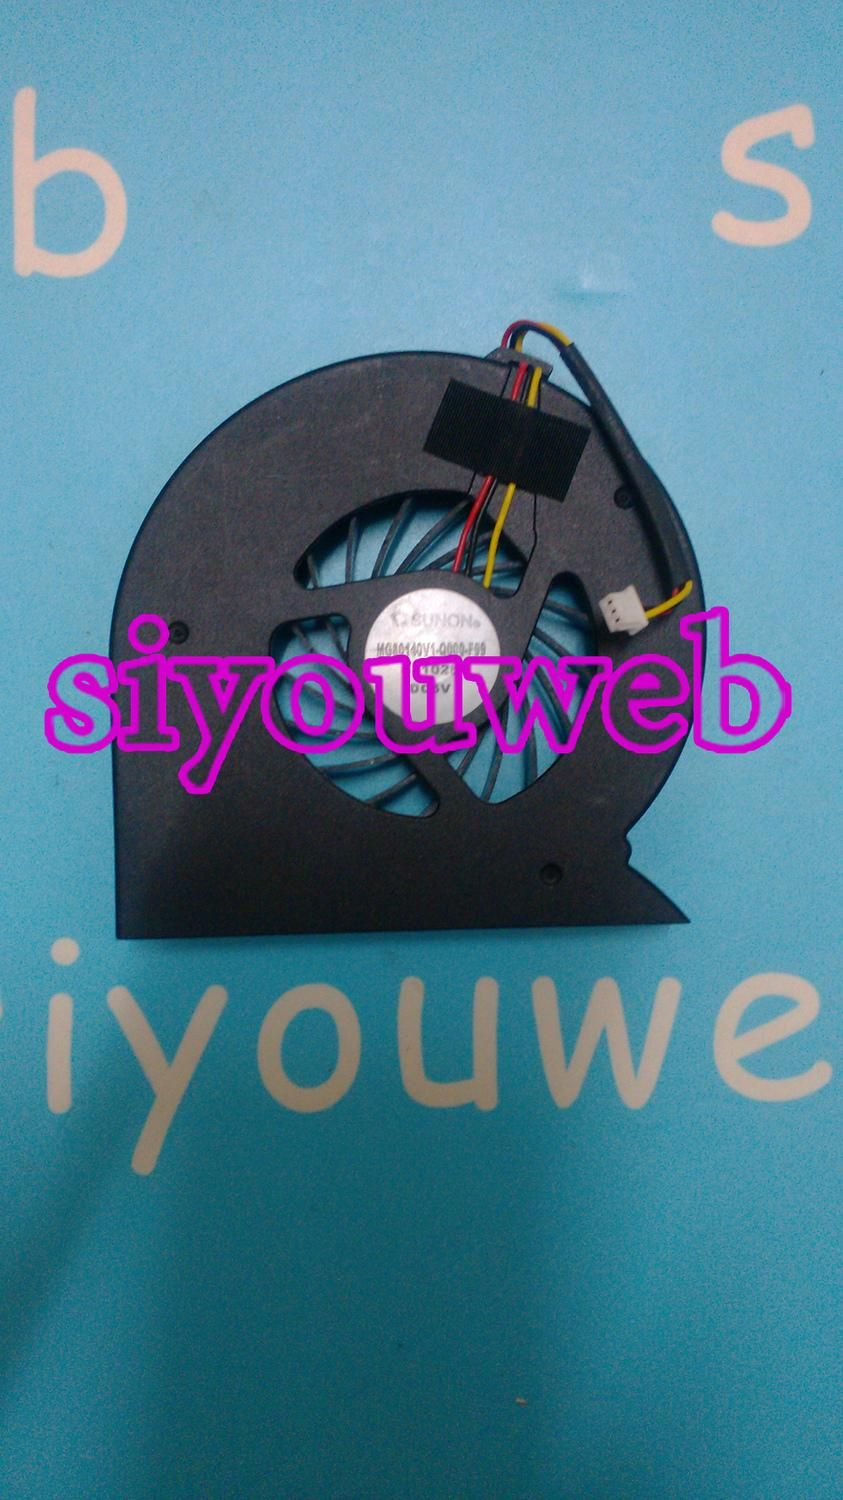 New Original For Acer Aspire 8730 8730g Laptop Cpu Cooling Fan